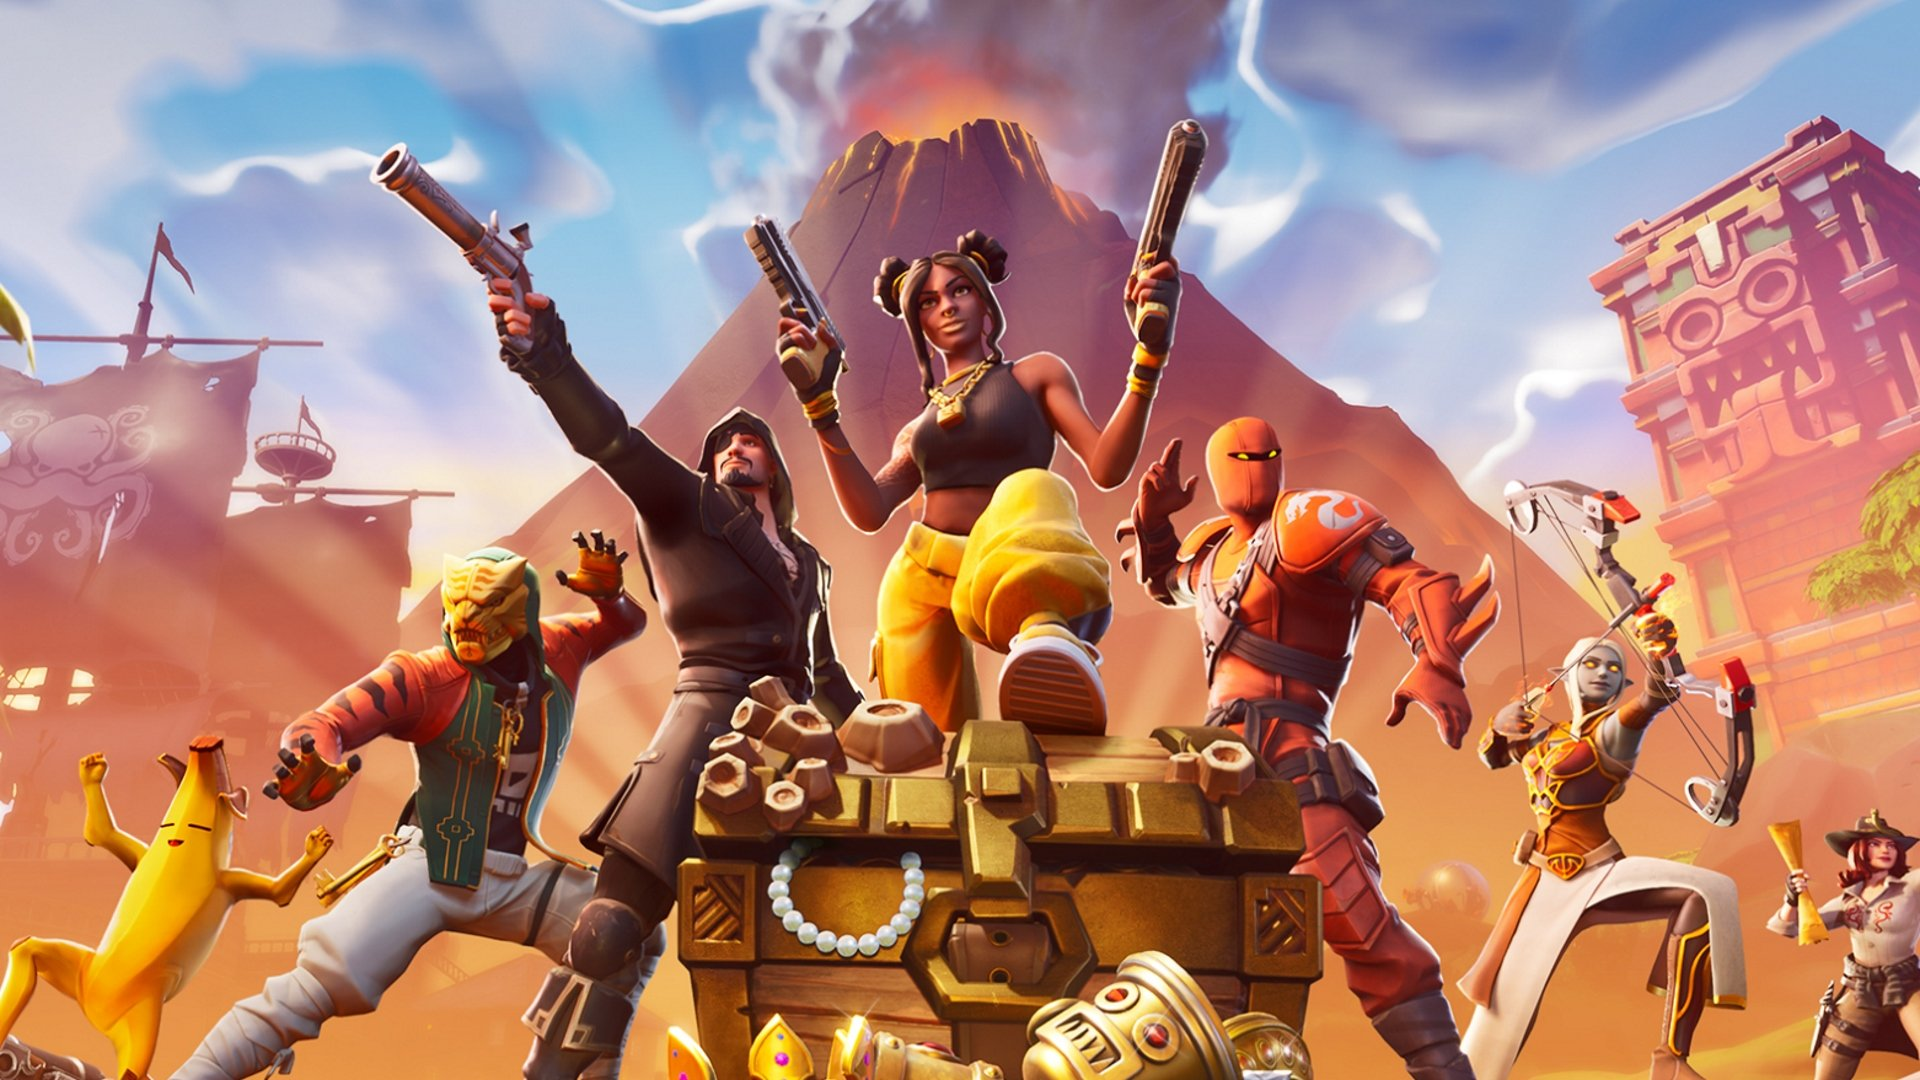 Fortnite crossplay PS4 Xbox One combined matchmaking